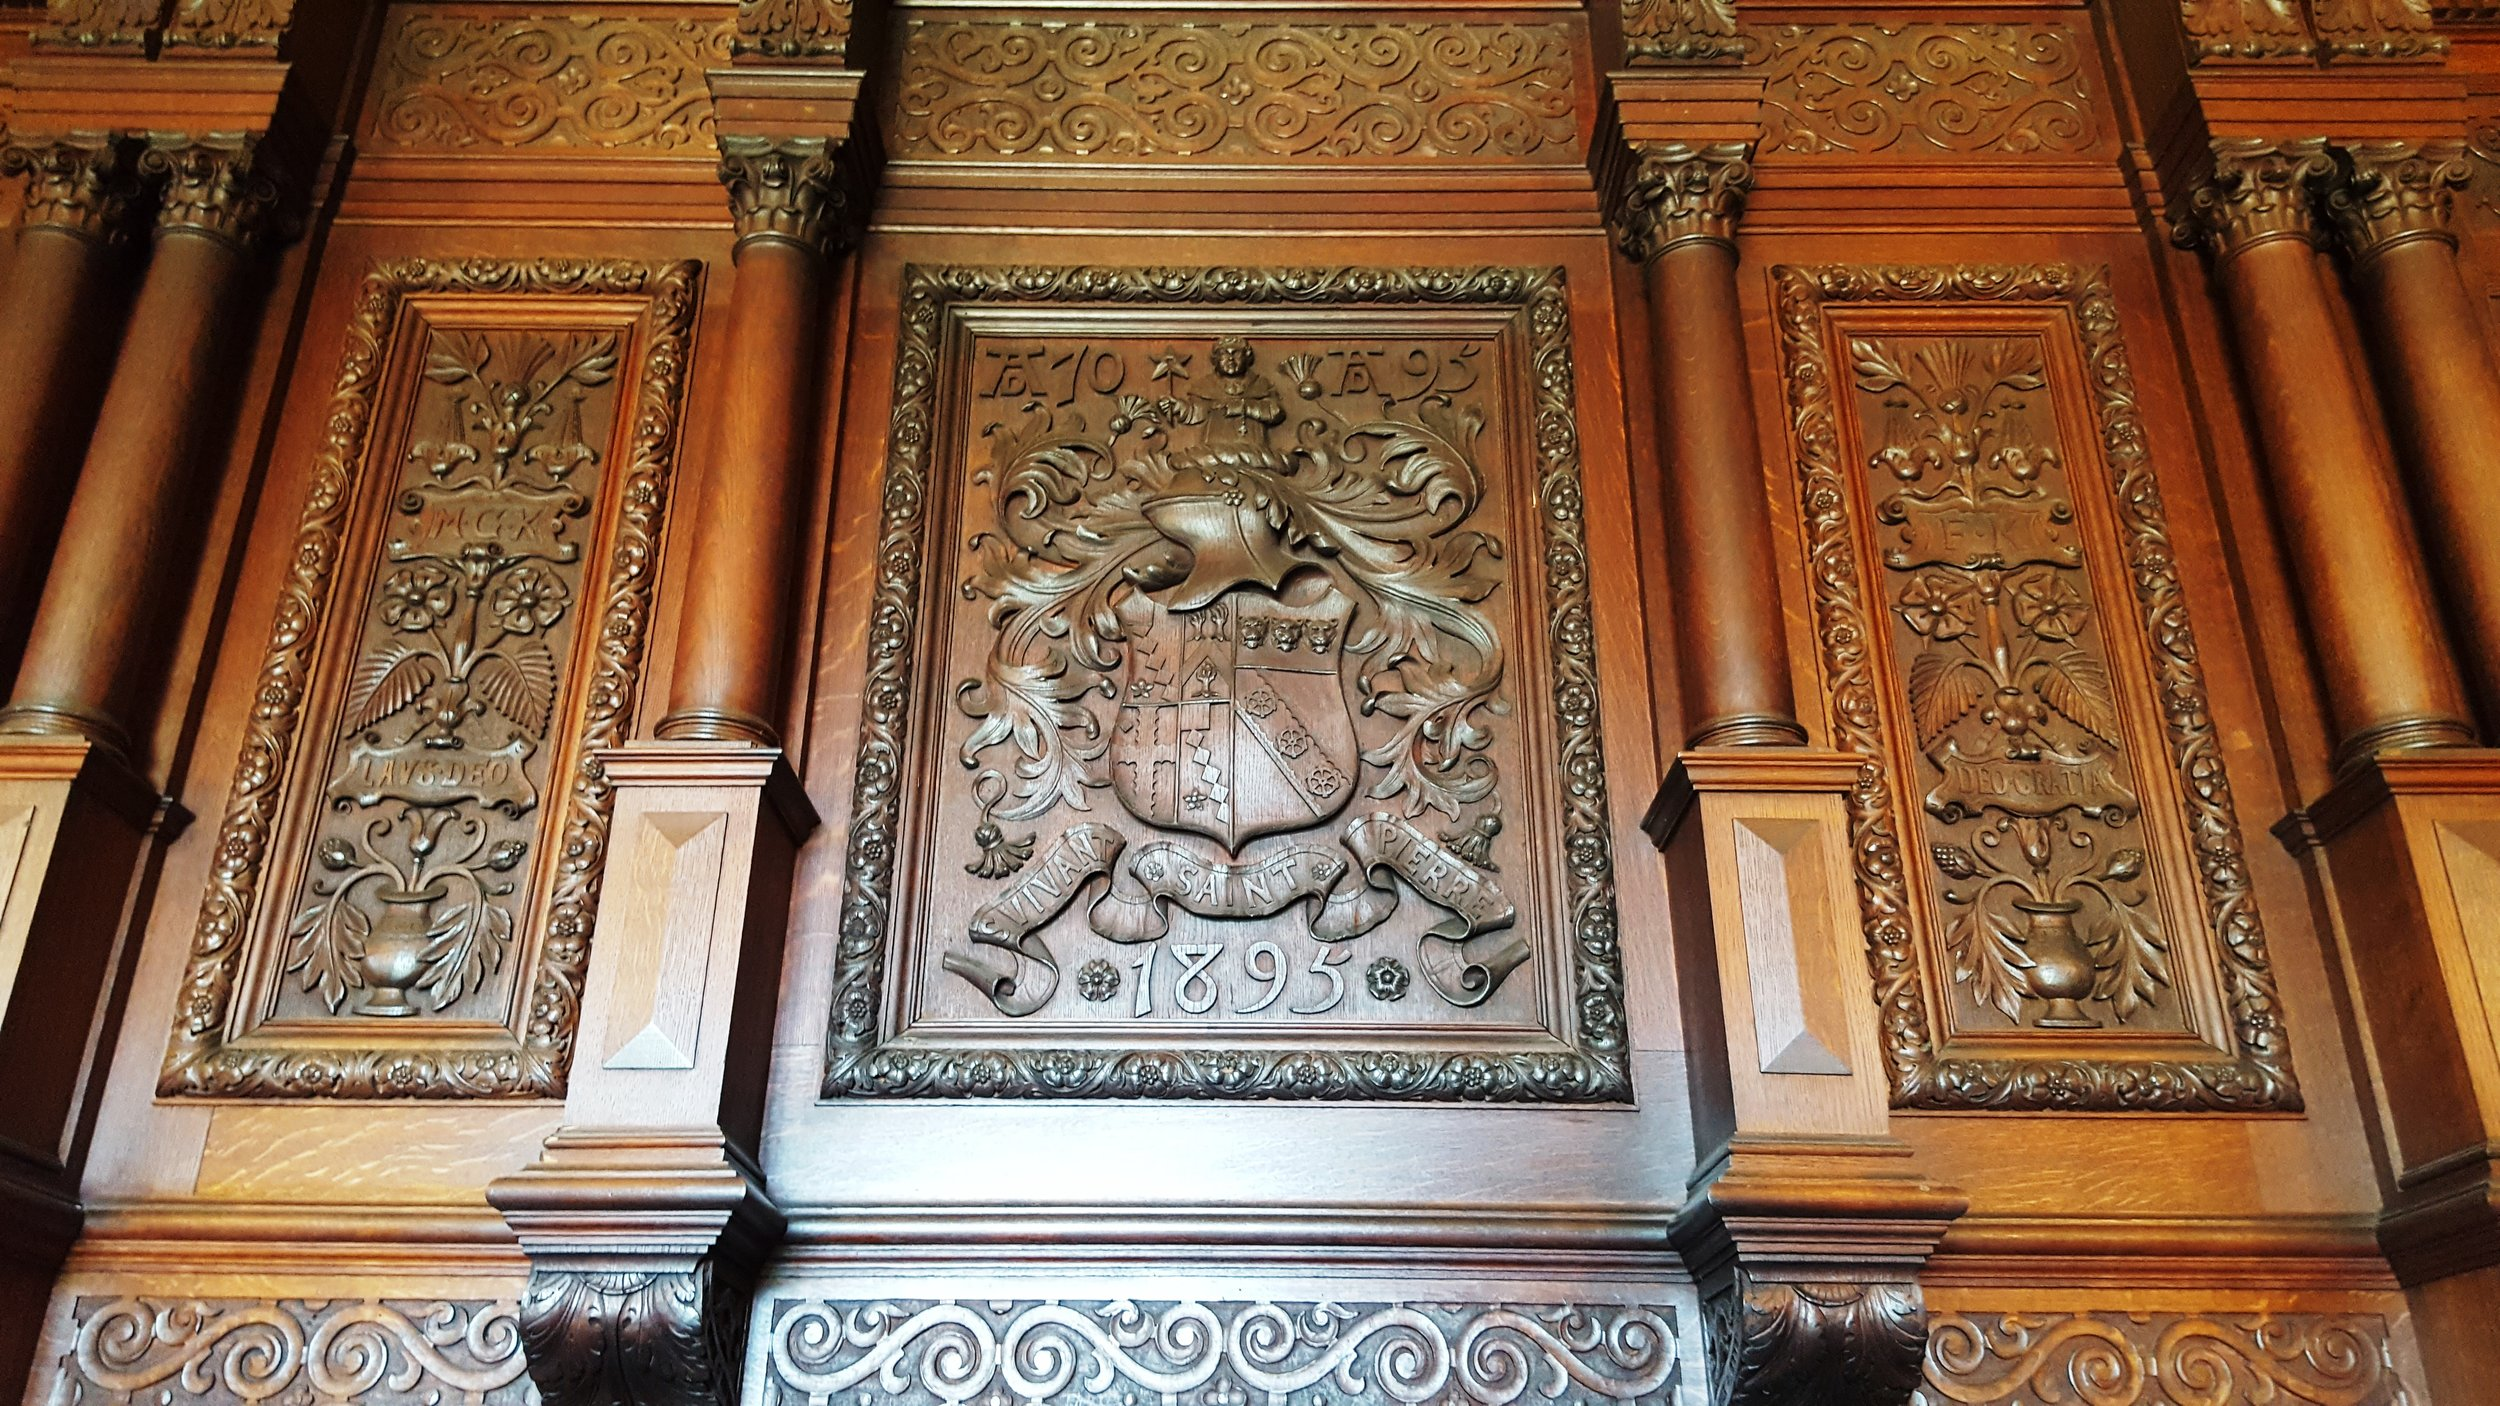 Carving above the fireplace in the dining room